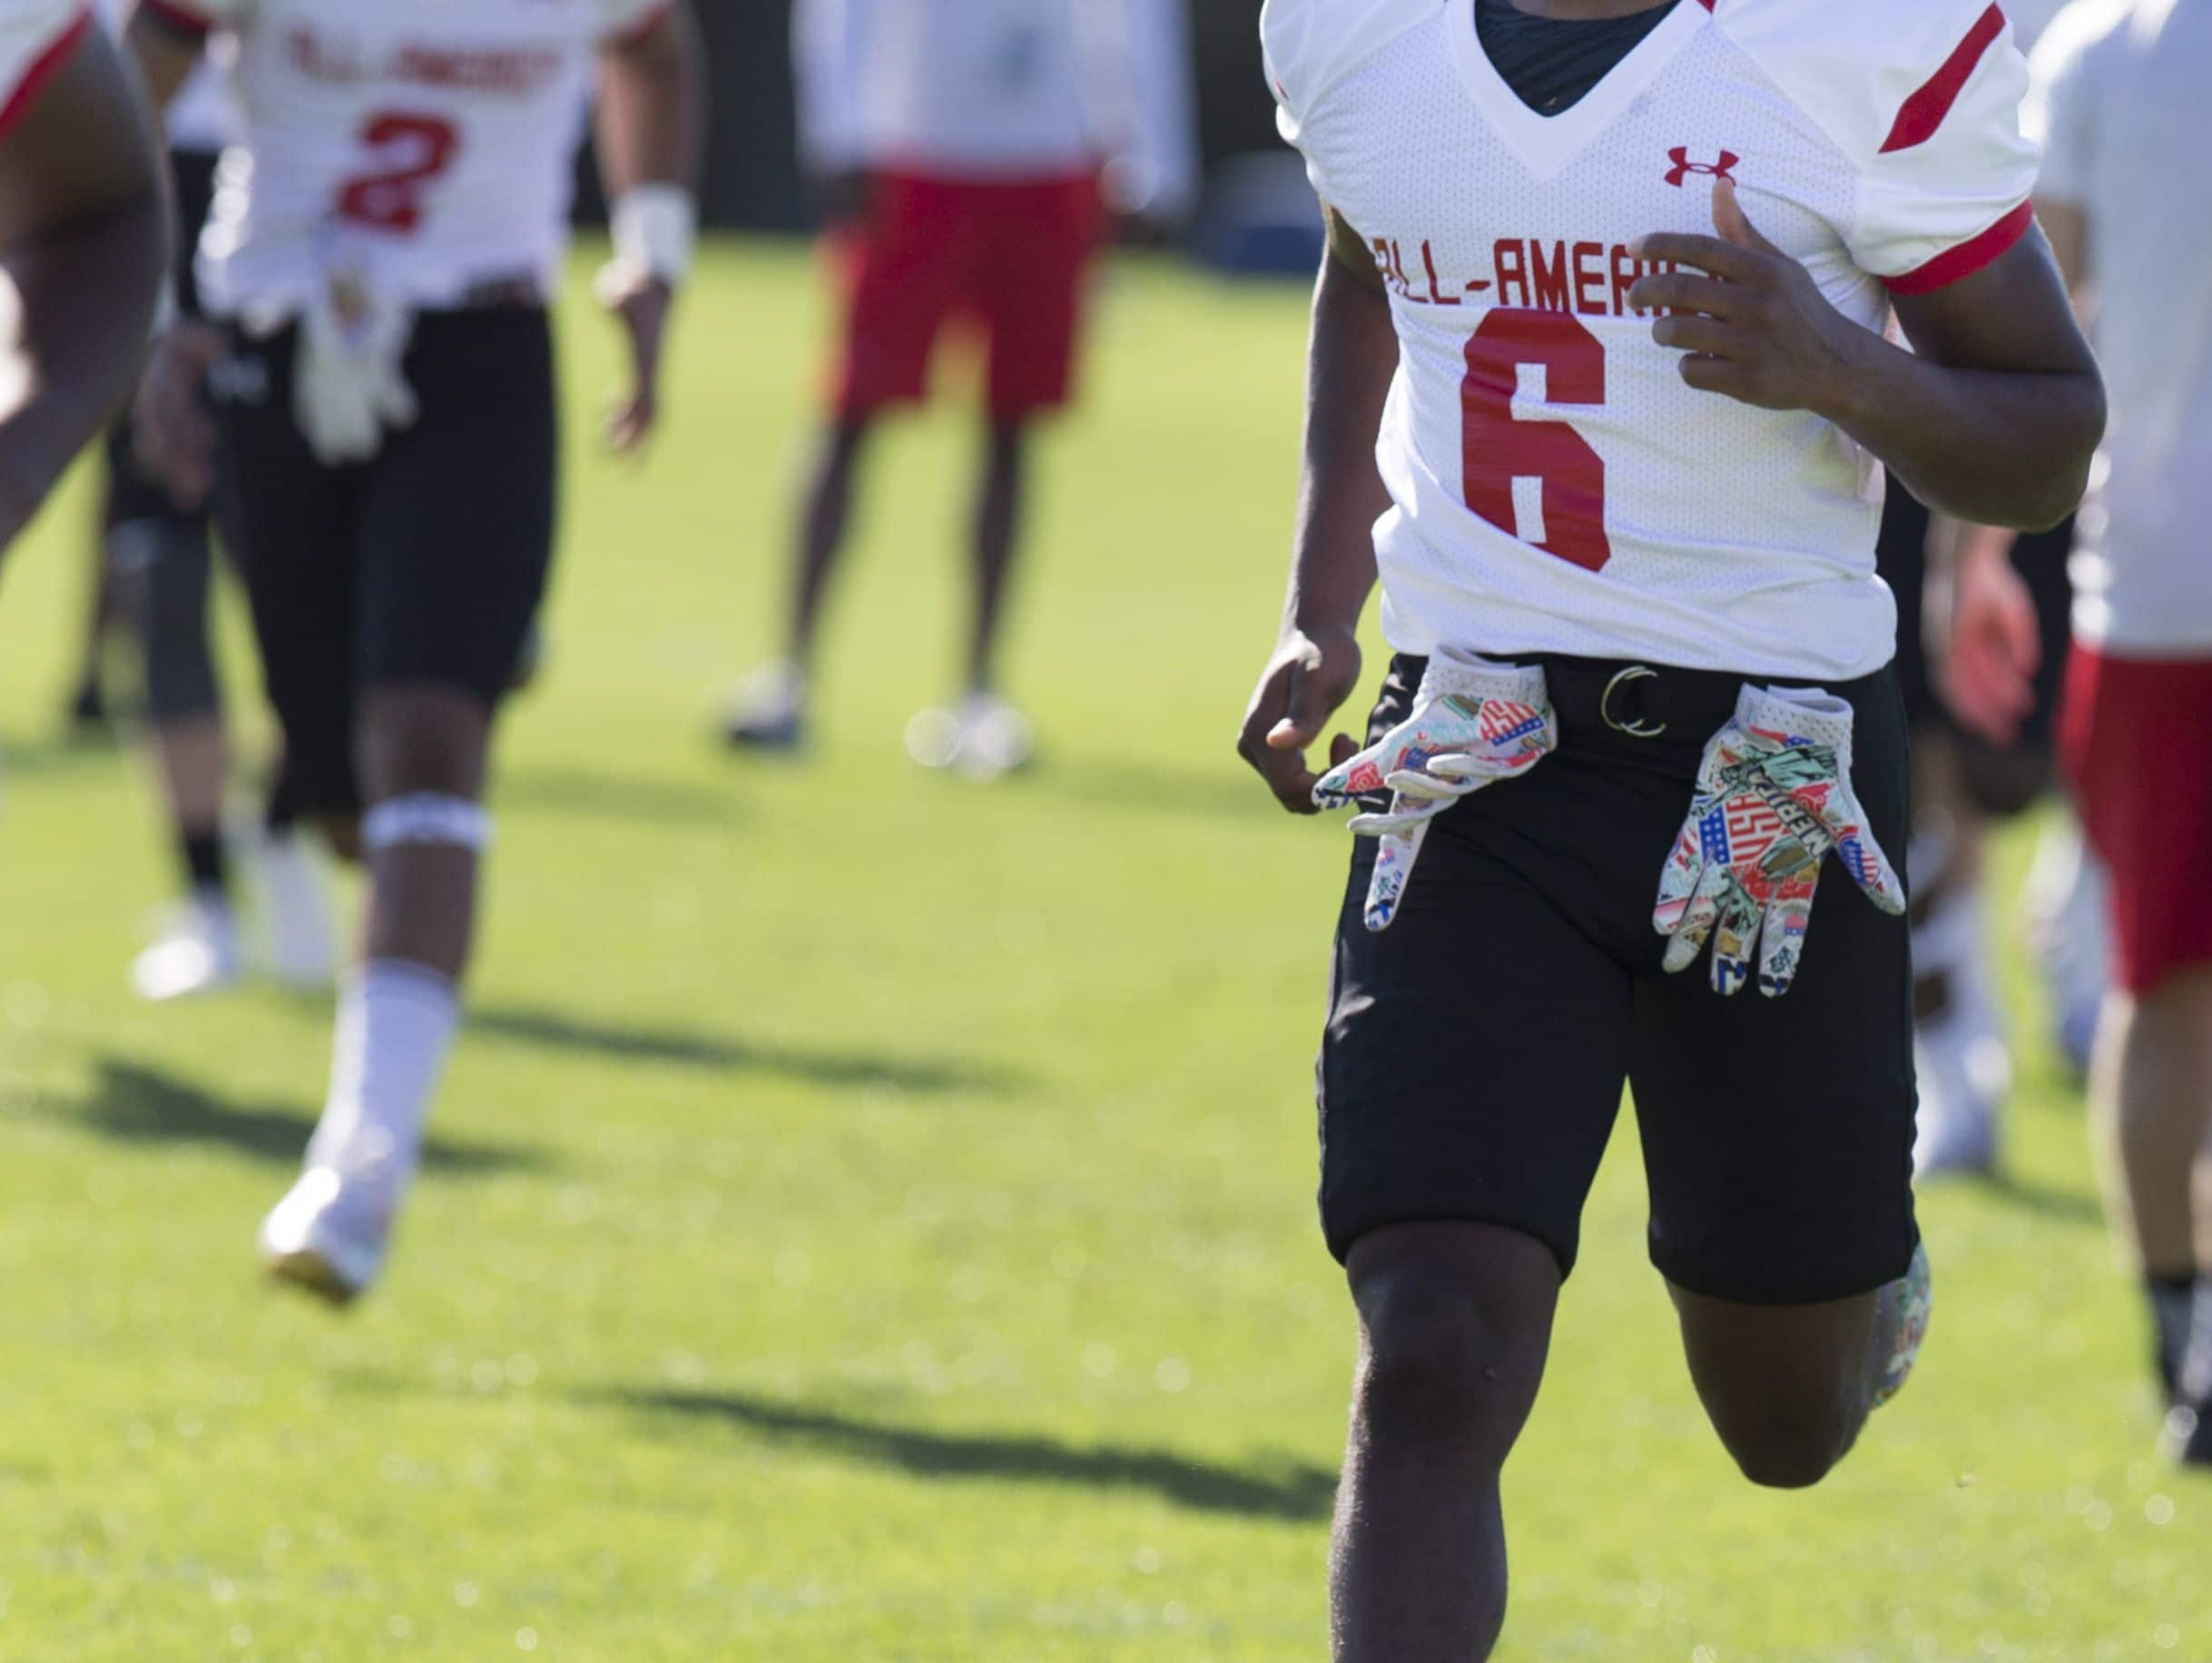 Louisville football commitment Russ Yeast is seen during practice for the Under Armour All-America football game. Dec. 29, 2016.